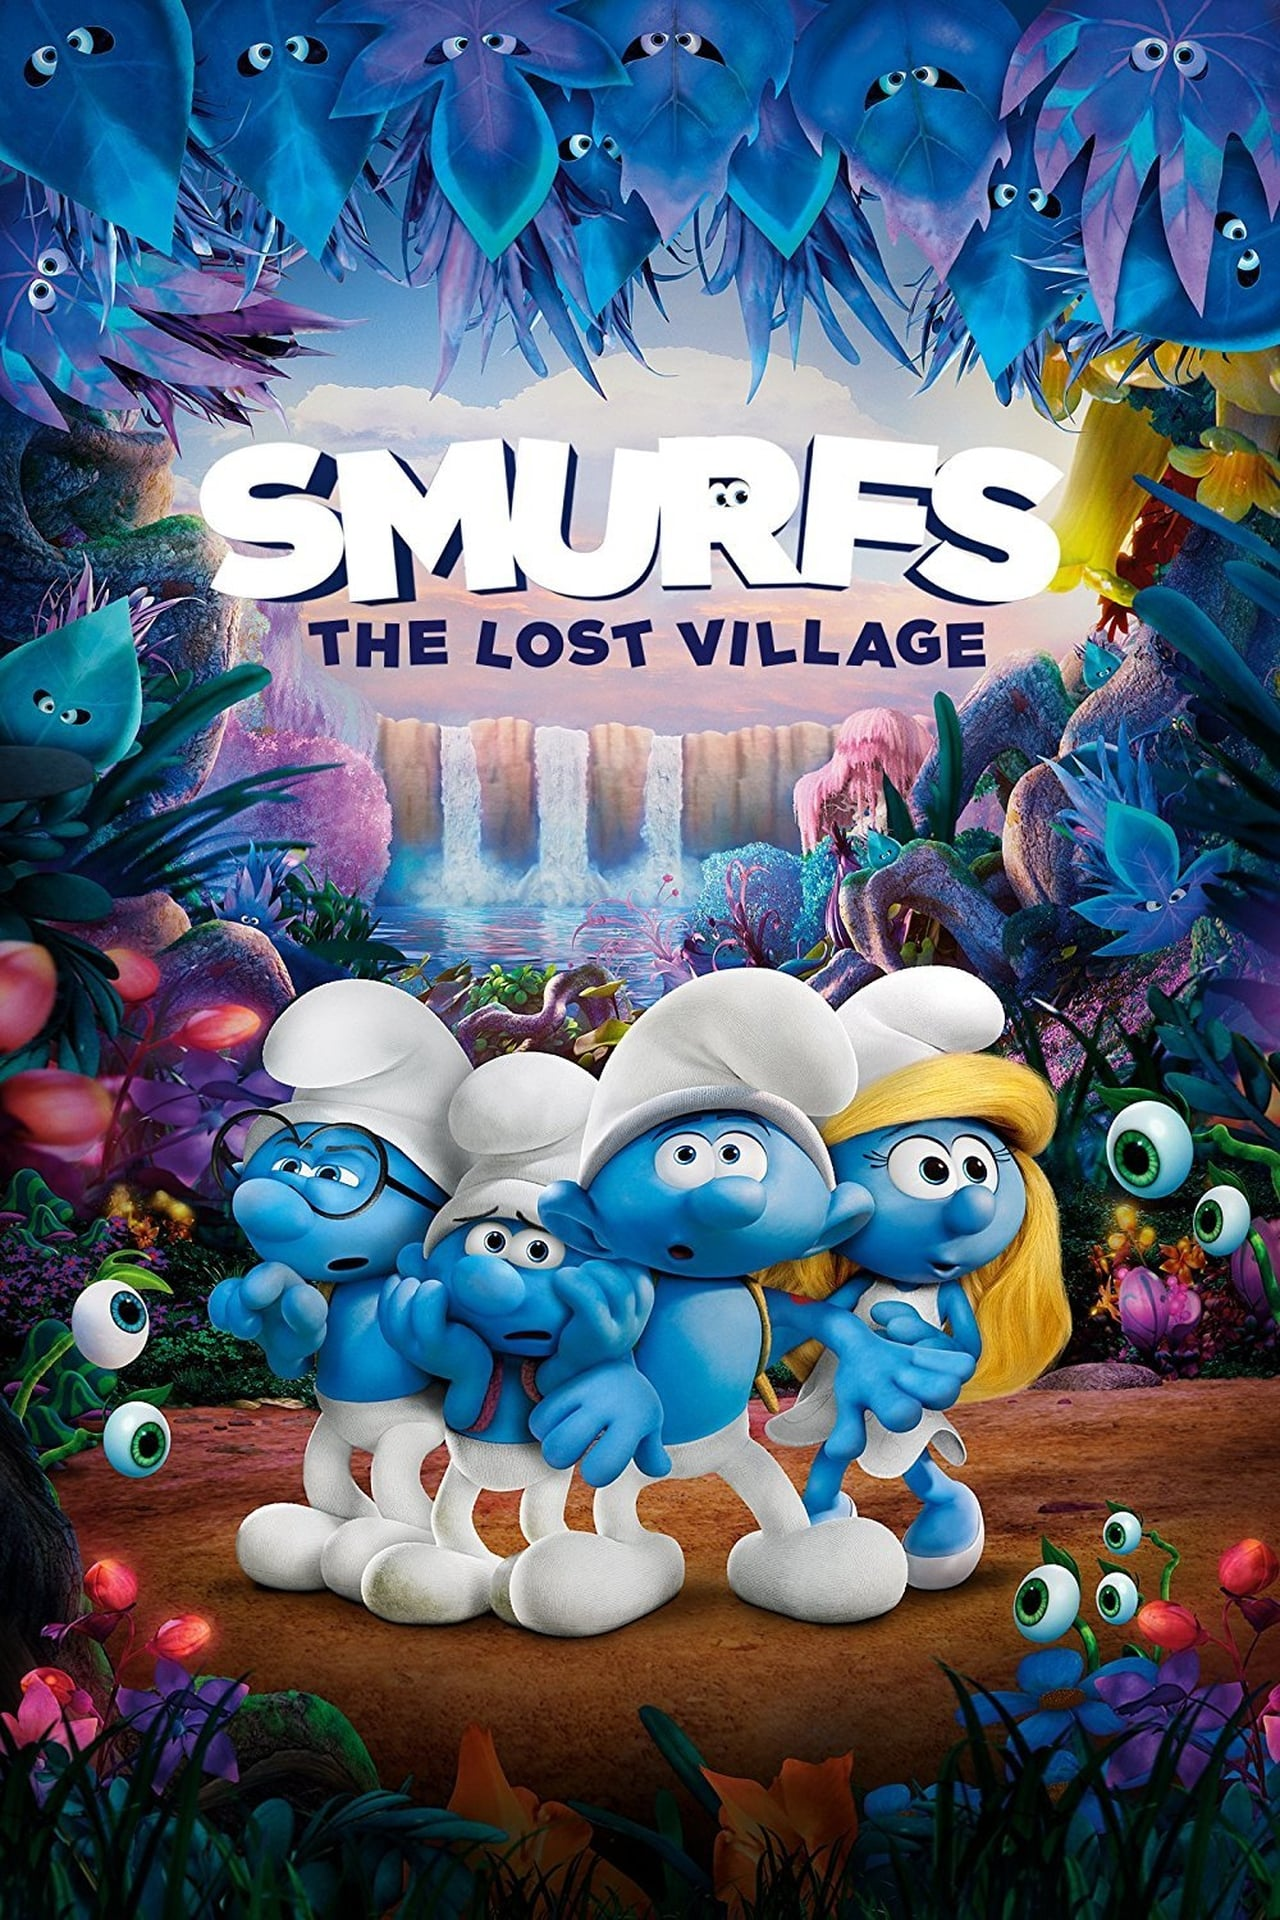 [INSTANT] [HD] Smurfs: The Lost Village (2017) English Full Episodes Online Free Download